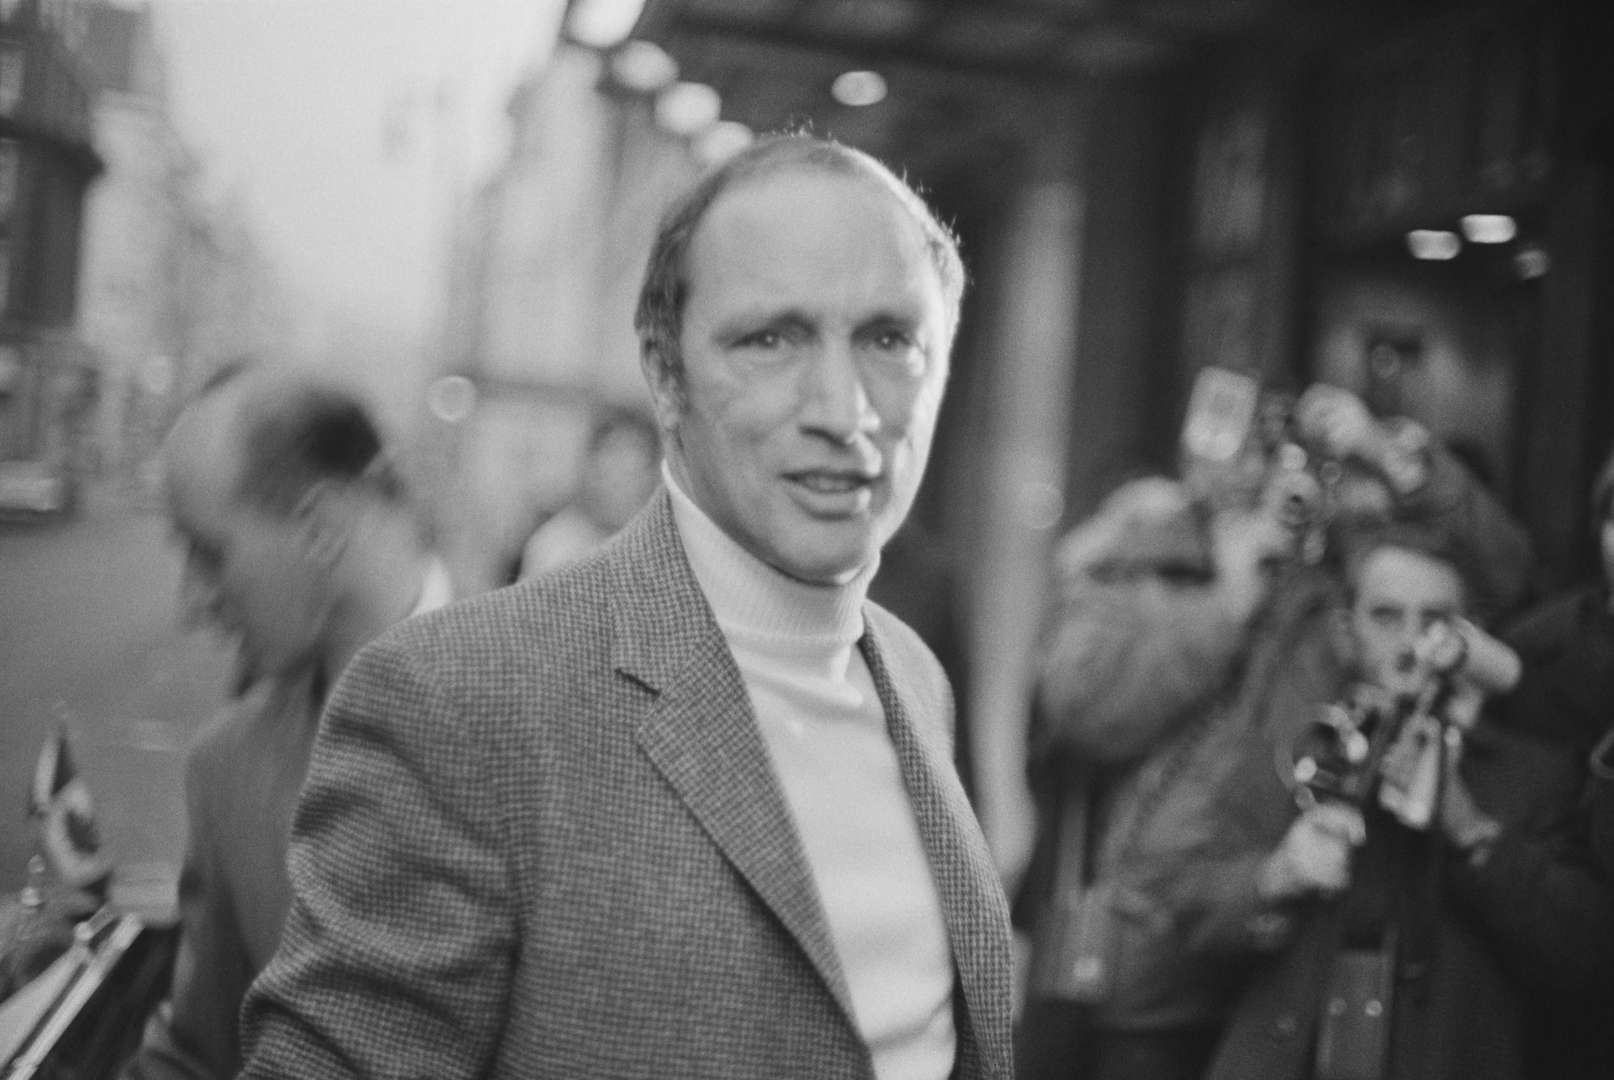 Prime Minister of Canada Pierre Trudeau (1919 - 2000) at Claridge's hotel, London, 4th January 1969.